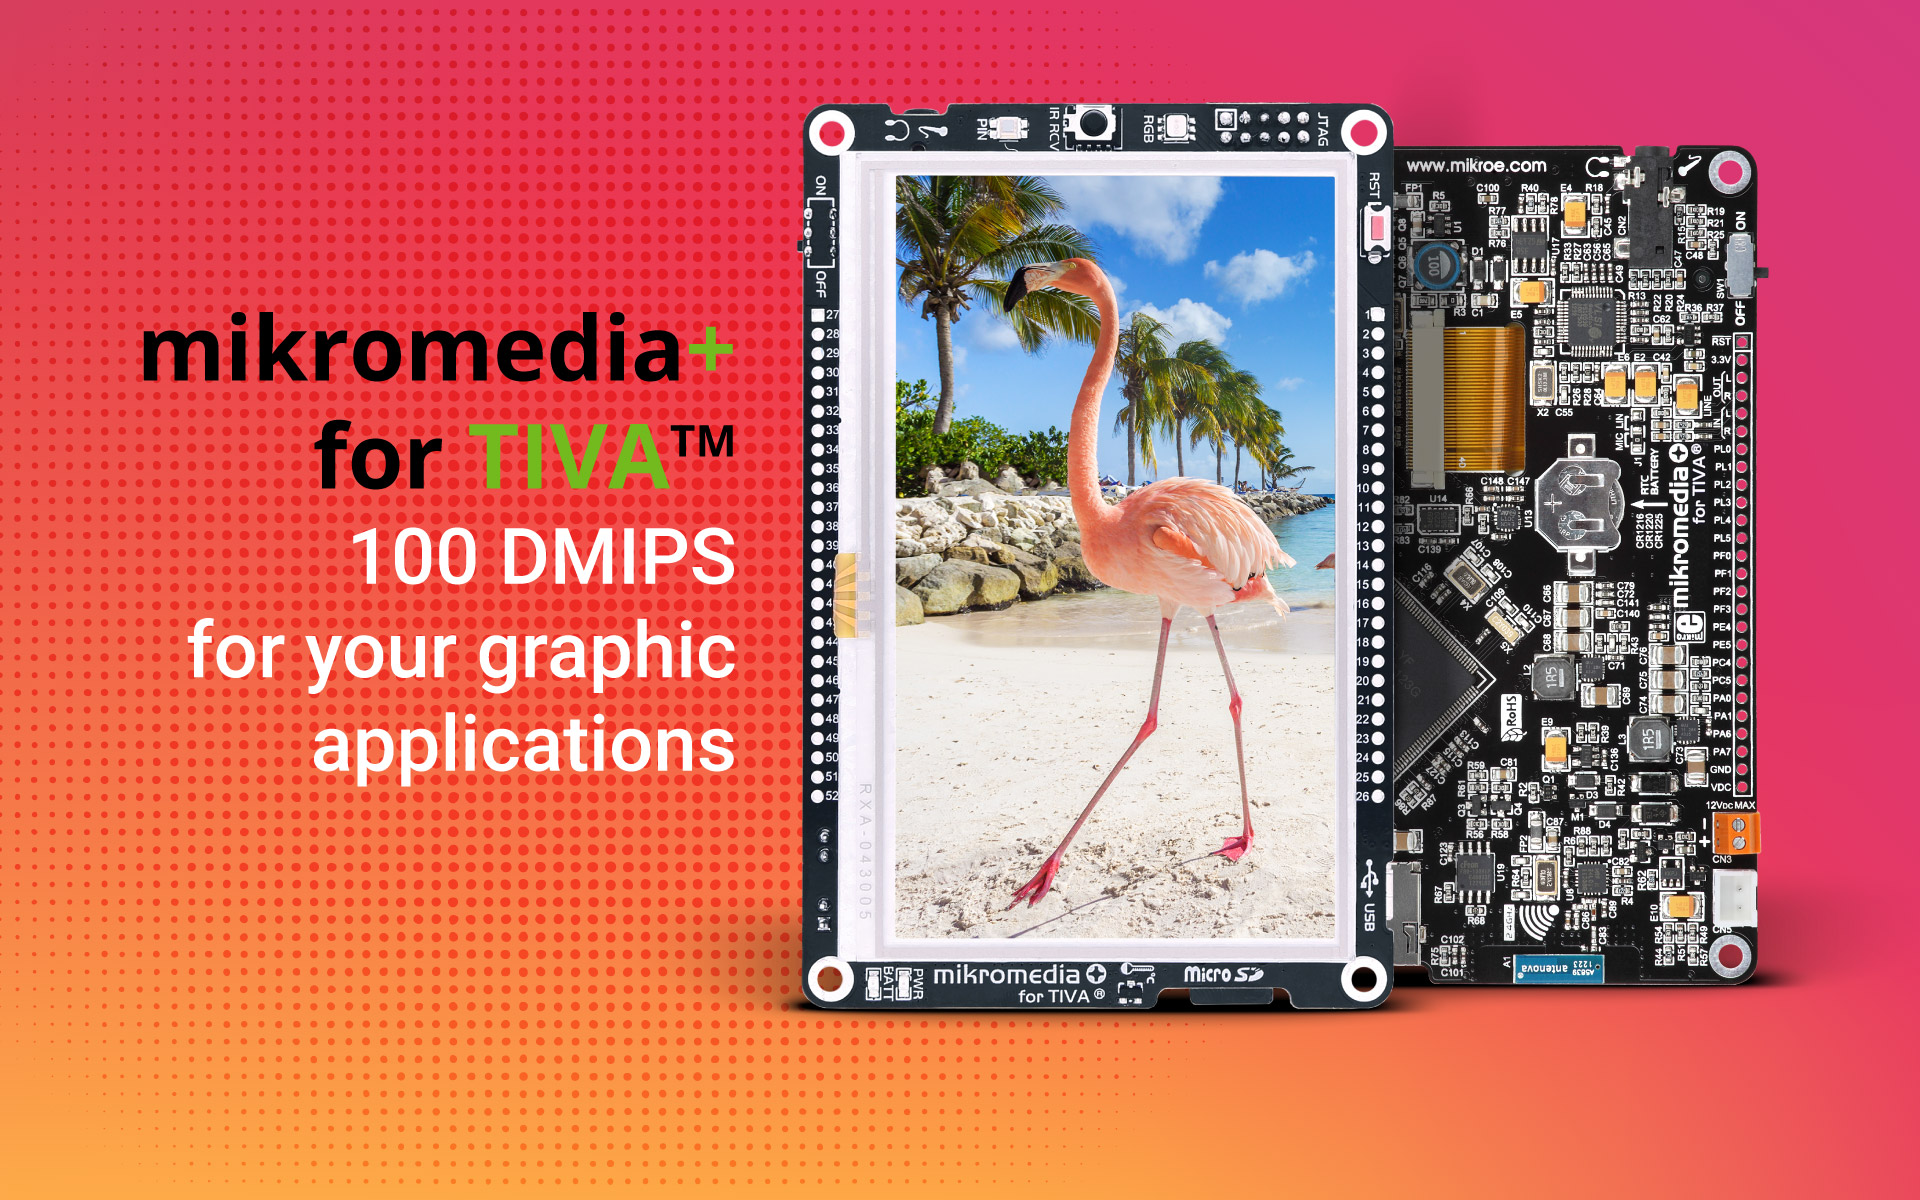 mikromedia Plus for TIVA - feature rich 4.3'' board